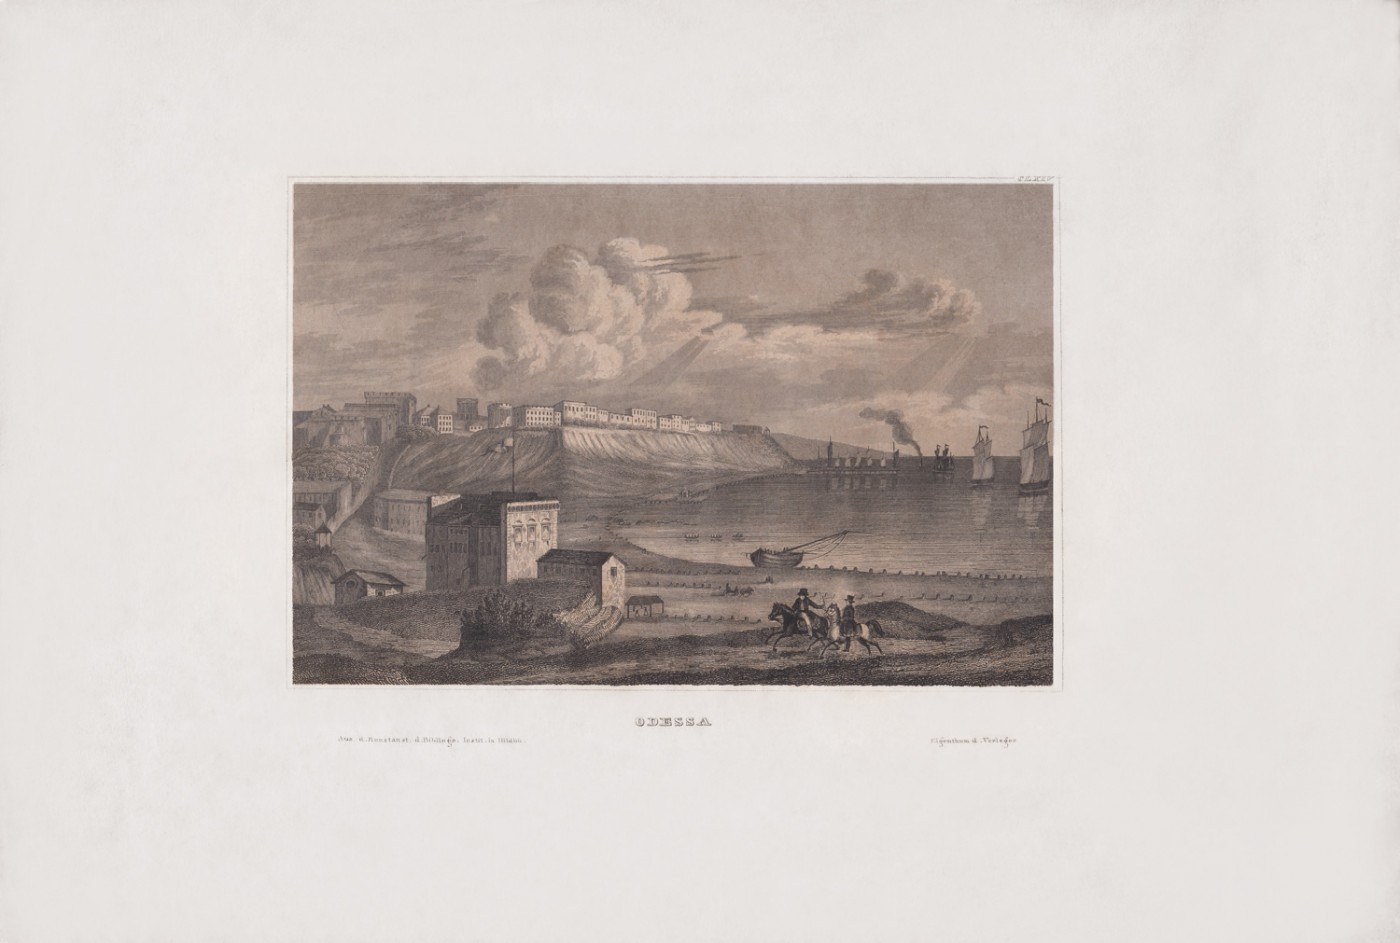 Odesa. The City View from Customs. 1830s.